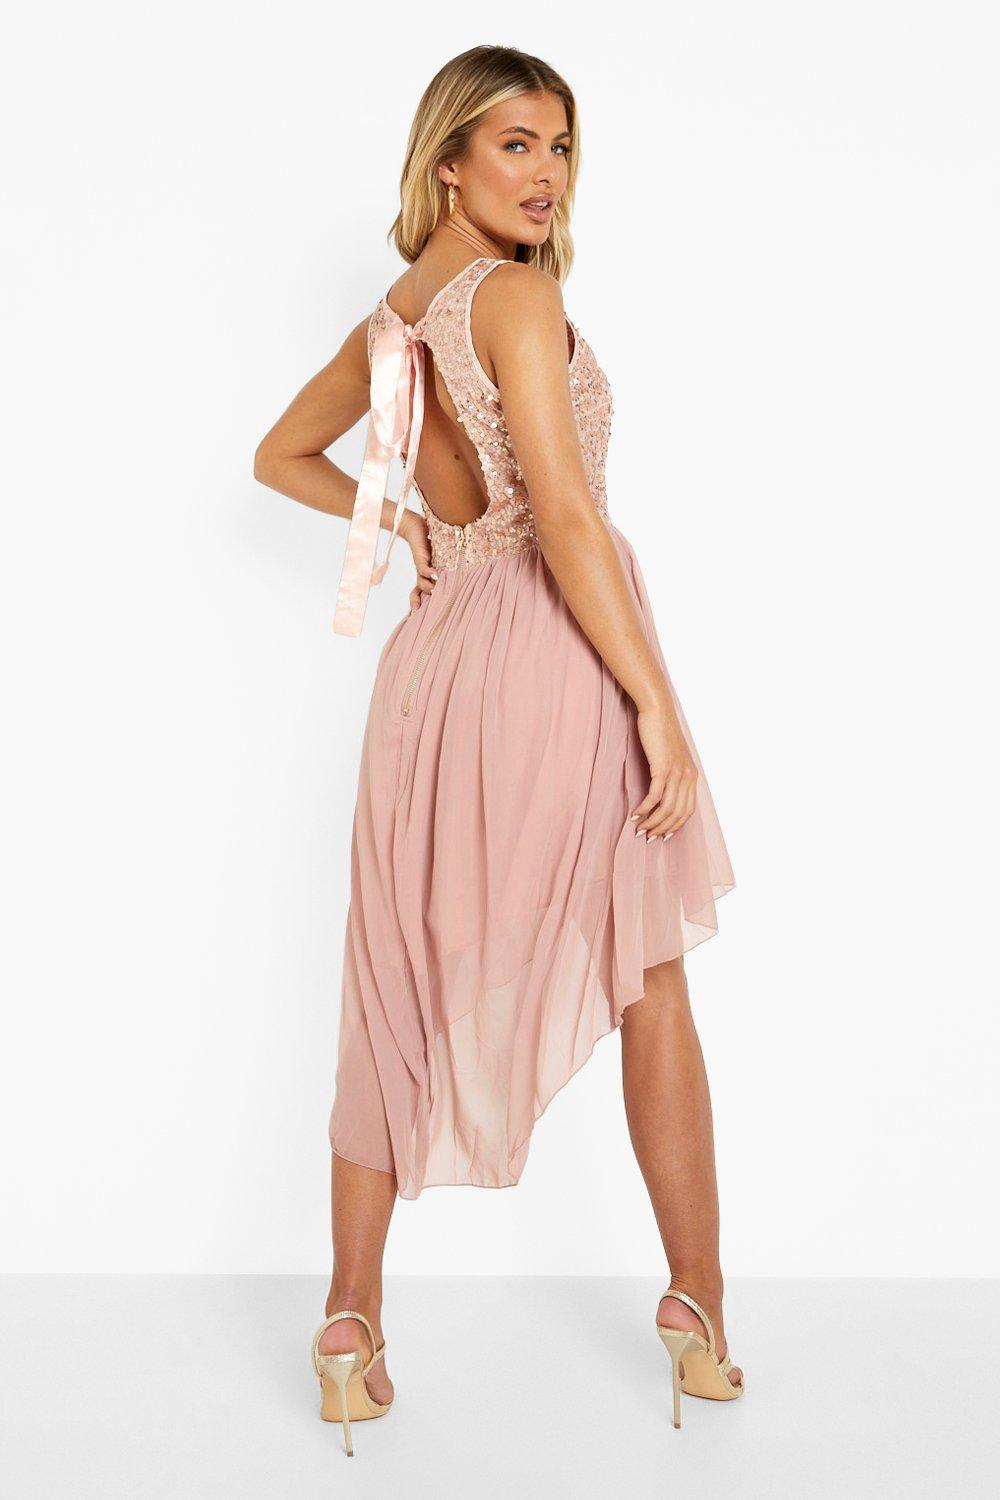 Jess Sequin Top Open Back Chiffon Dip Hem Dress - Boohoo